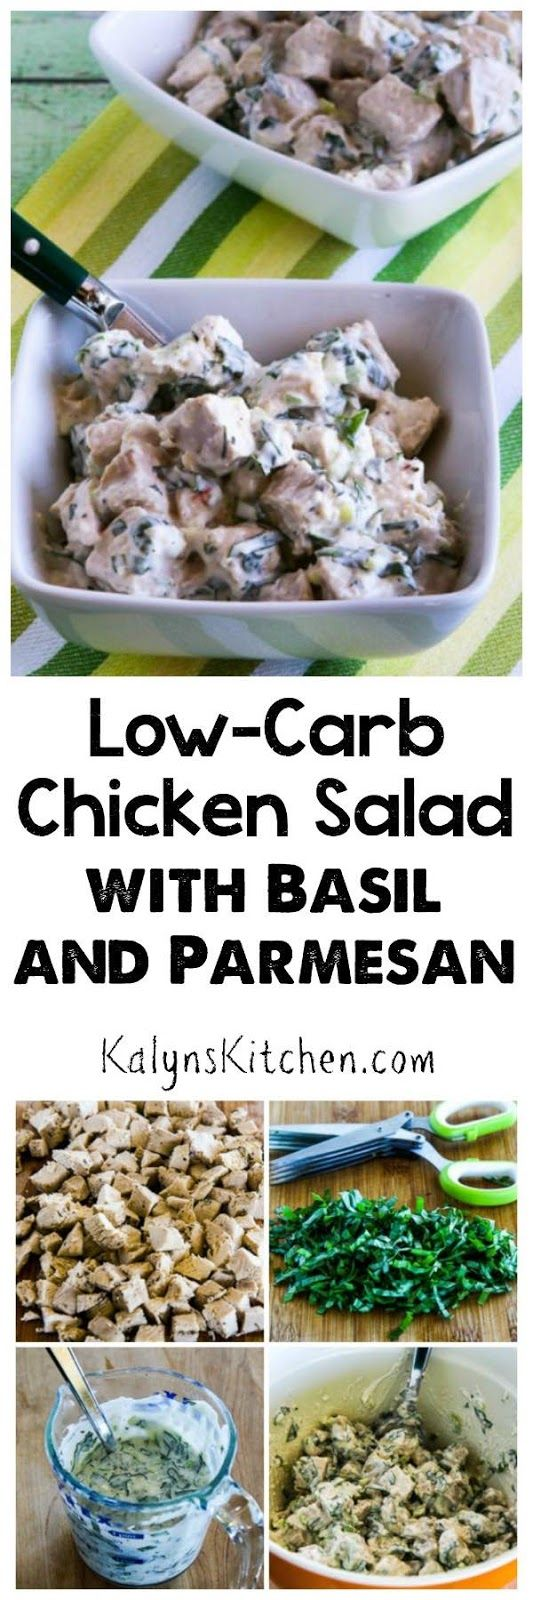 Low-Carb Chicken Salad with Basil and Parmesan; this tasty salad ...